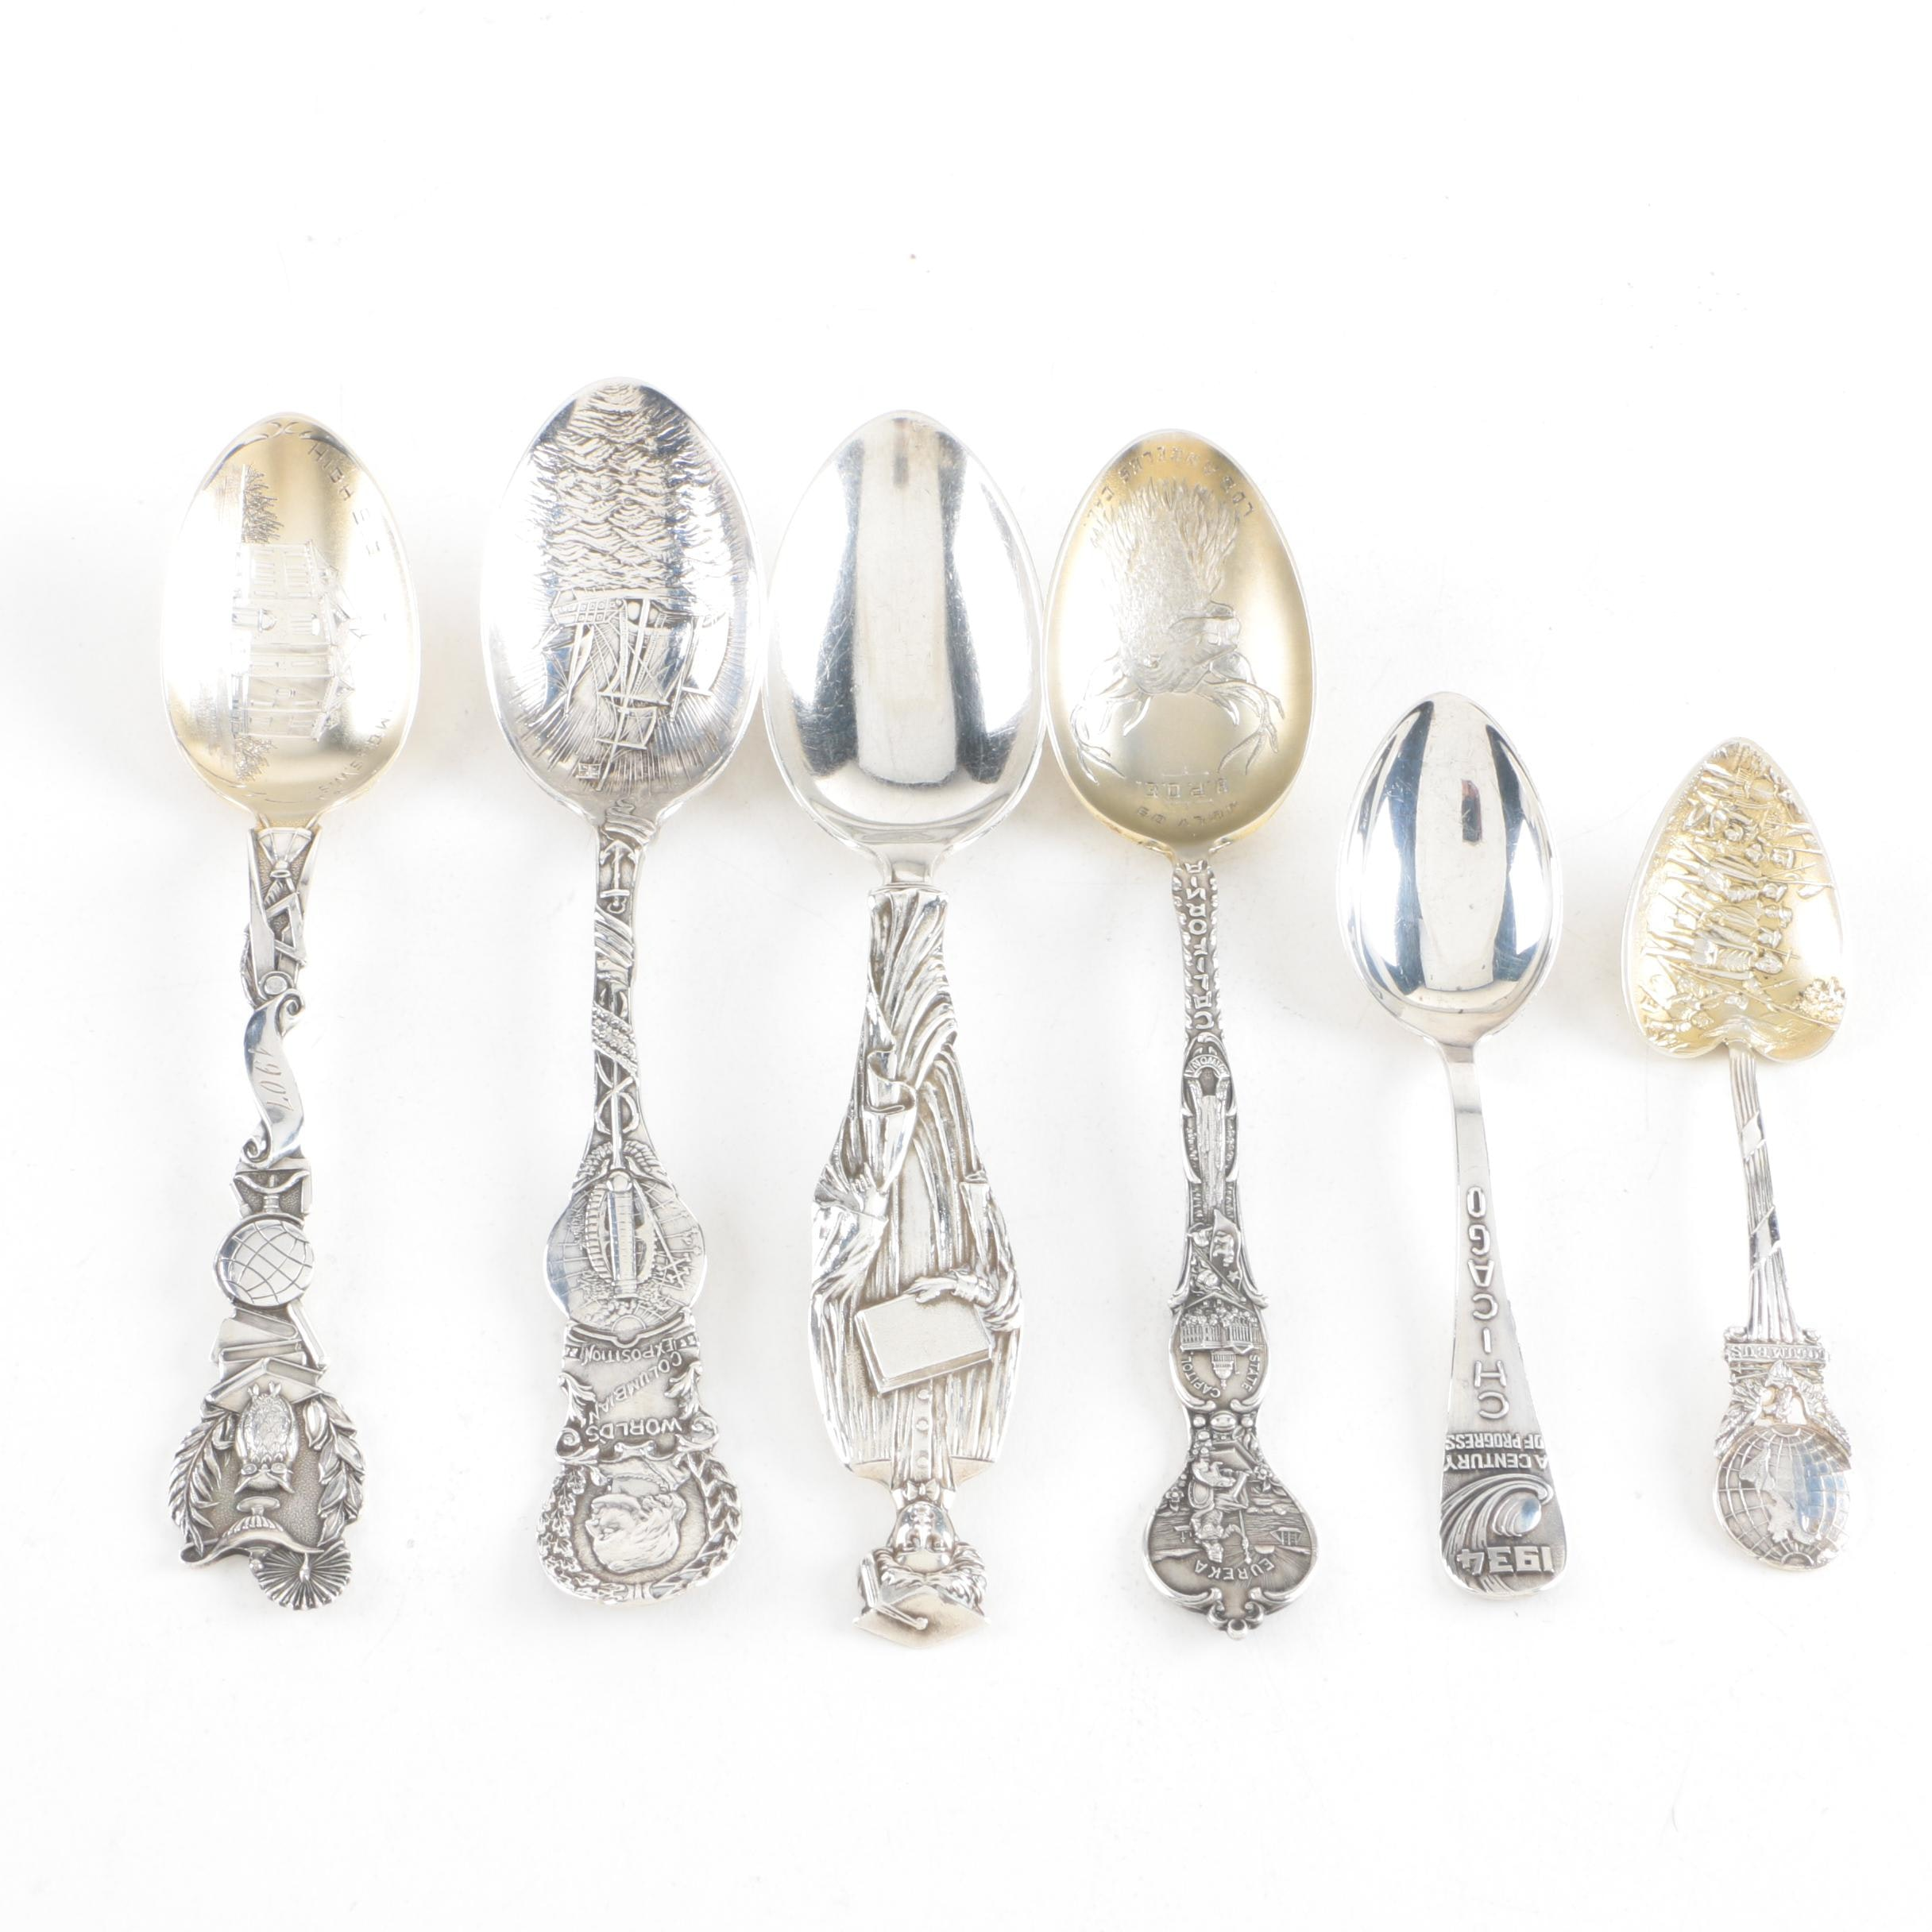 Lunt, Joseph Mayer & Bros. and Watson Company Sterling Souvenir Spoons